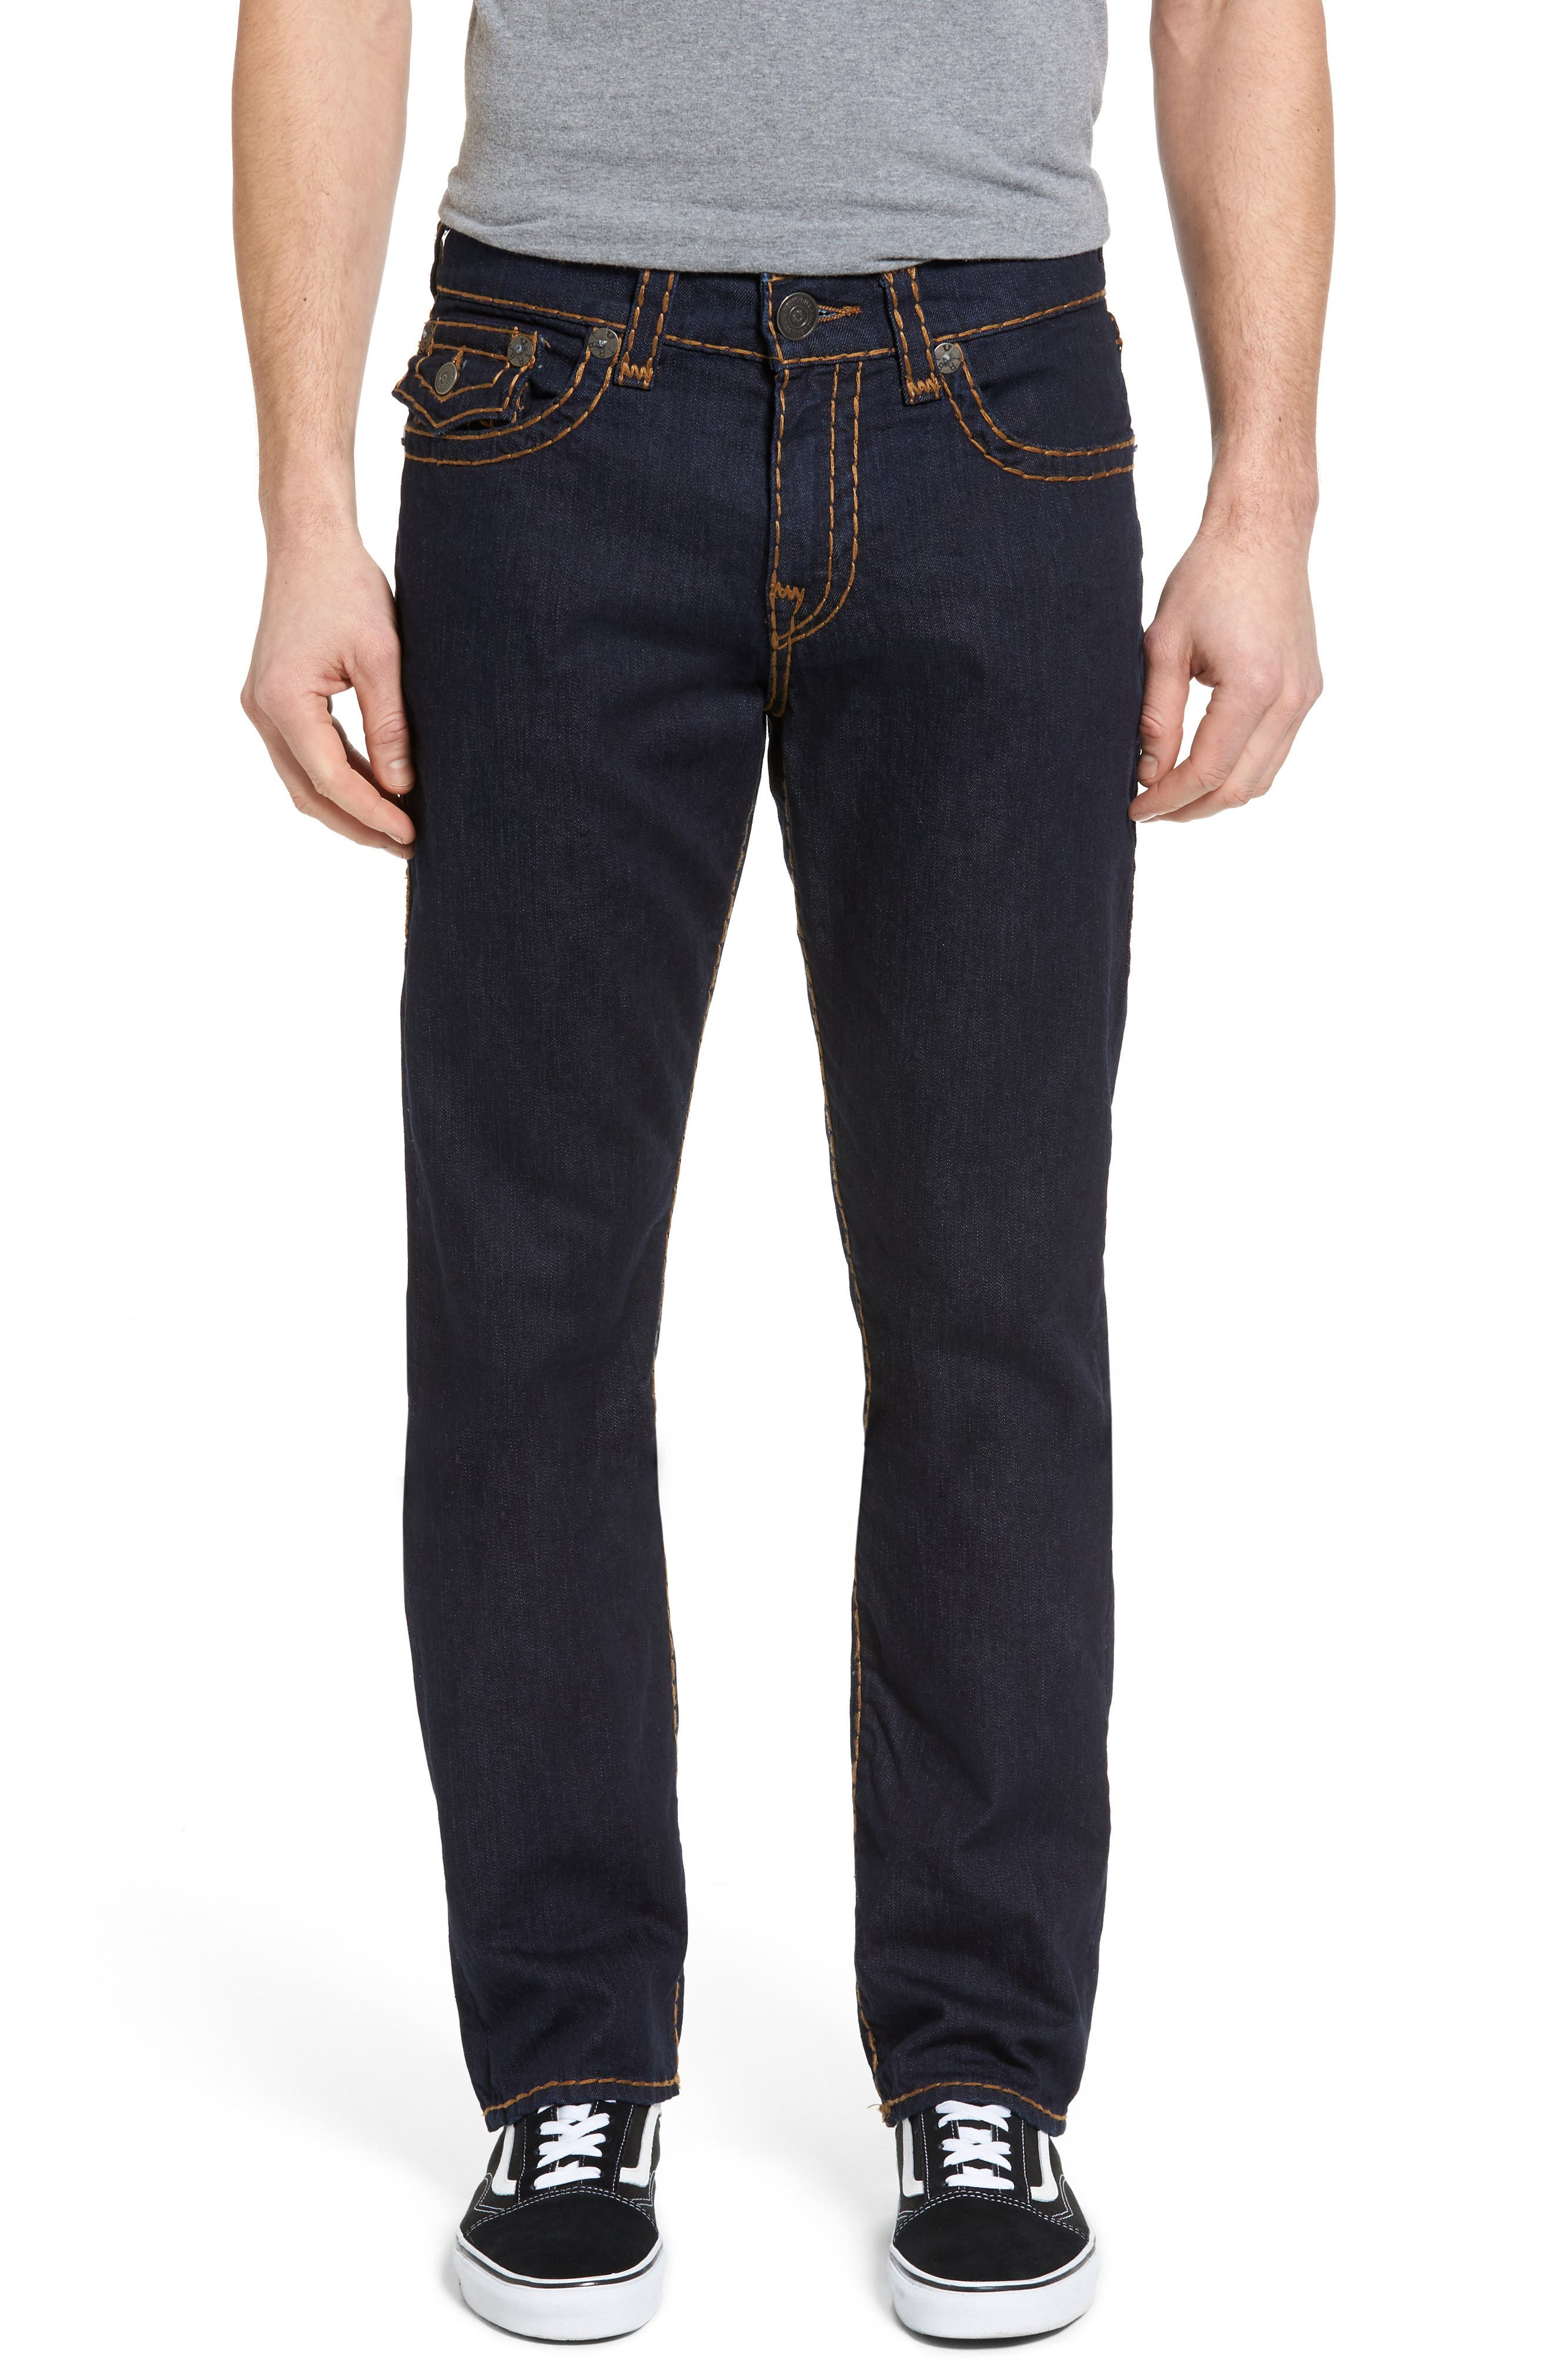 Ricky Relaxed Fit Jeans,                         Main,                         color, 400